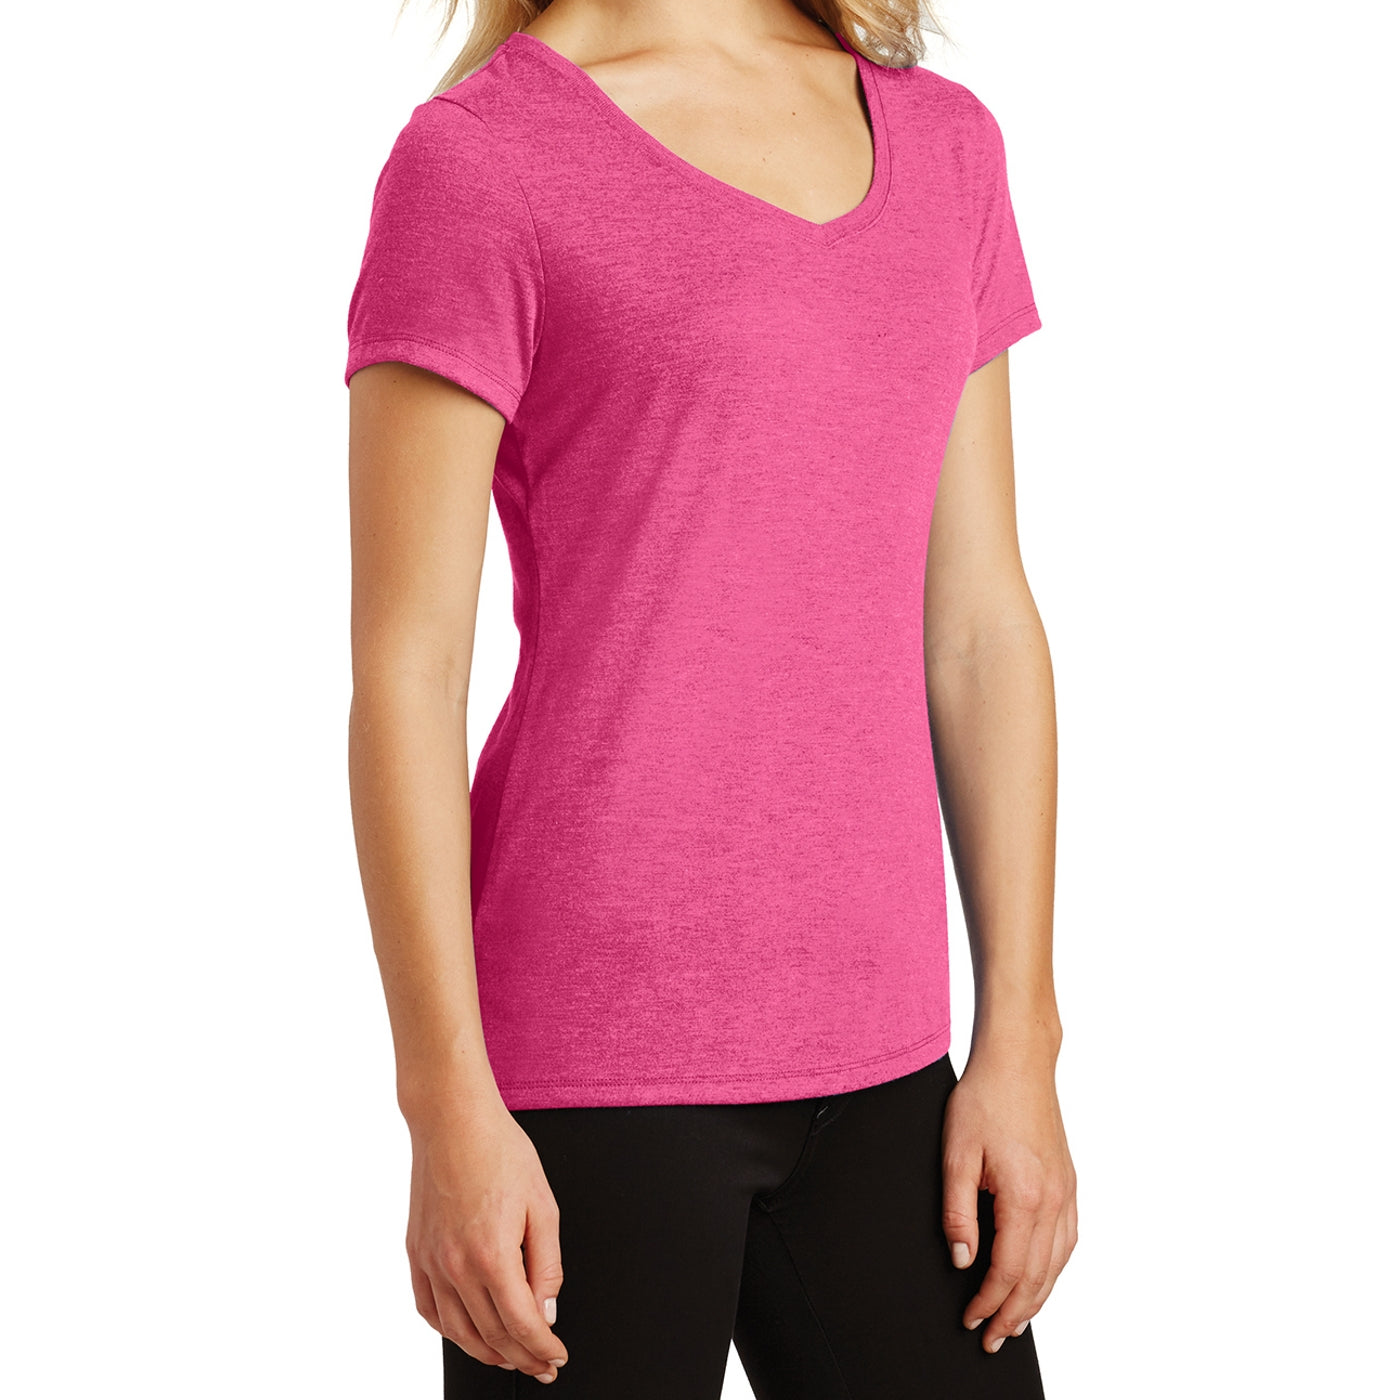 Women's Perfect Tri V-Neck Tee - Fuchsia Frost - Side